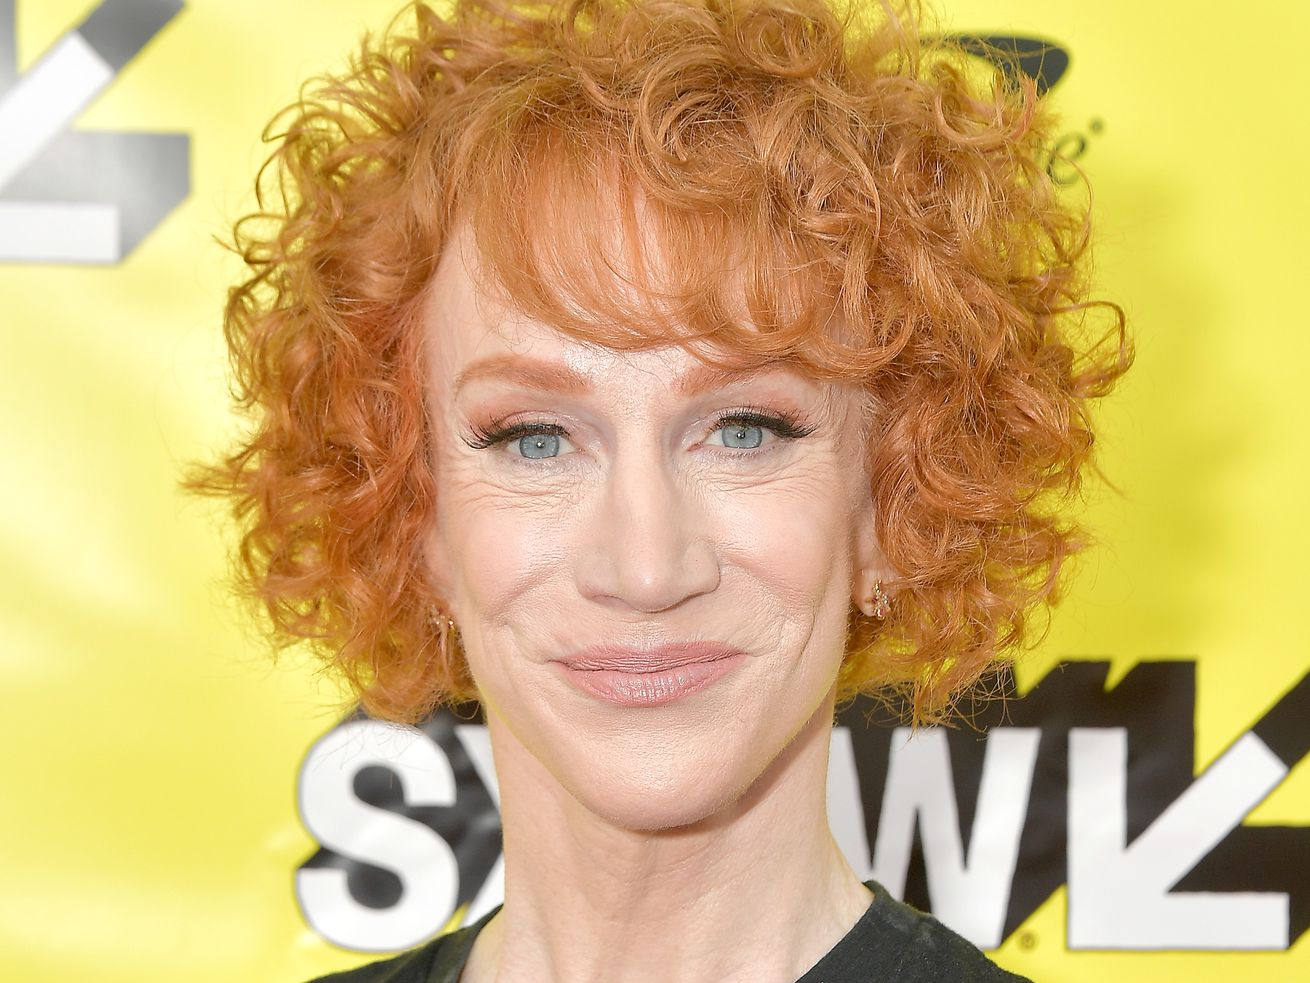 Kathy Griffin says Twitter CEO Jack Dorsey should resign and she wouldn't let Facebook CEO Mark Zuckerberg into her house